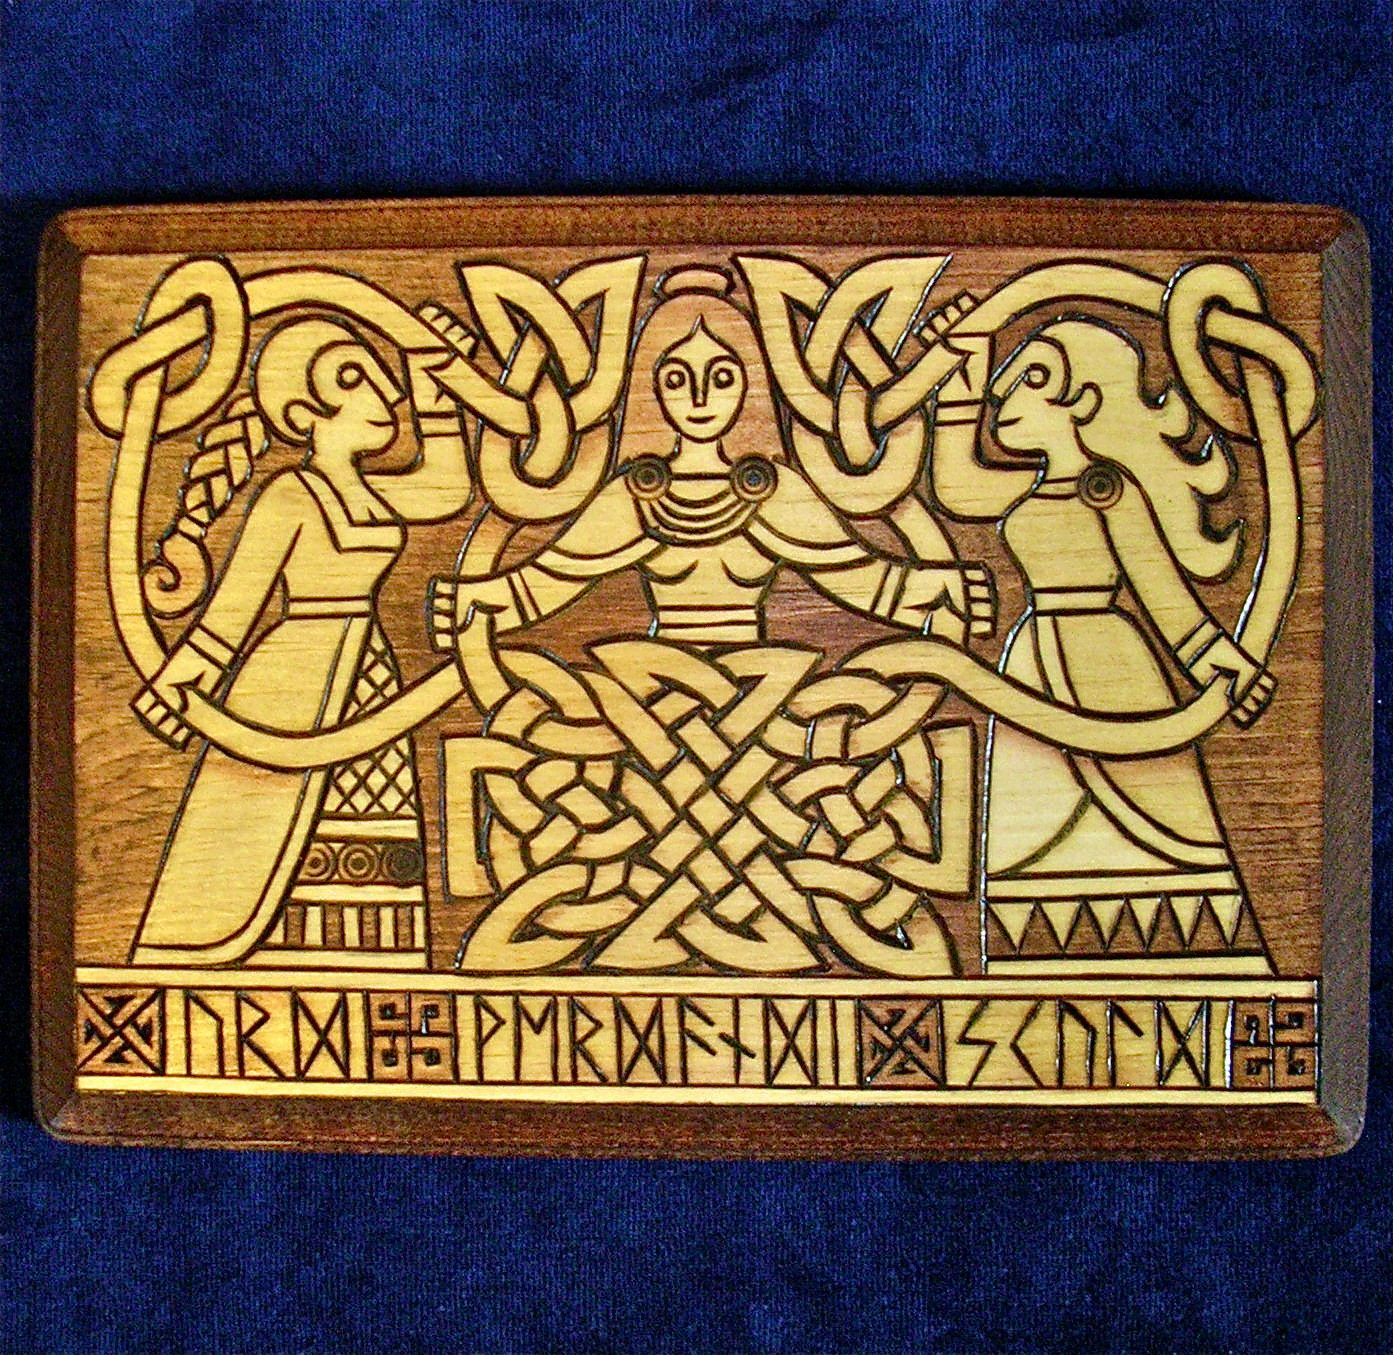 Wyrd Is A Concept In Anglo Saxon Culture Roughly